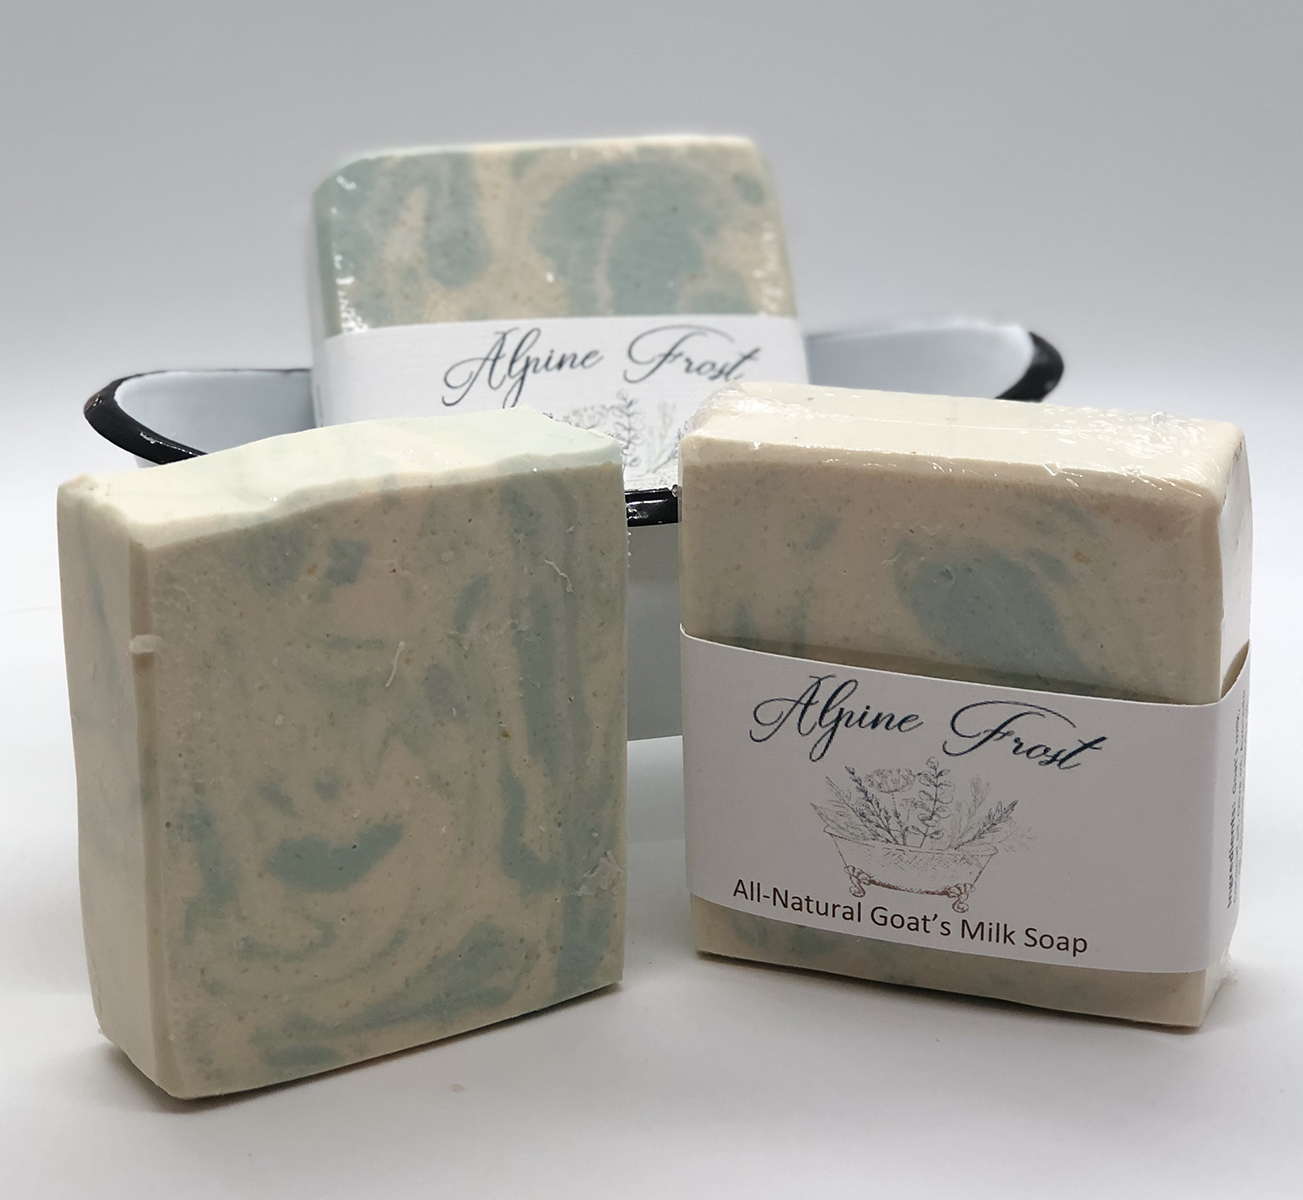 Alpine Frost Soap